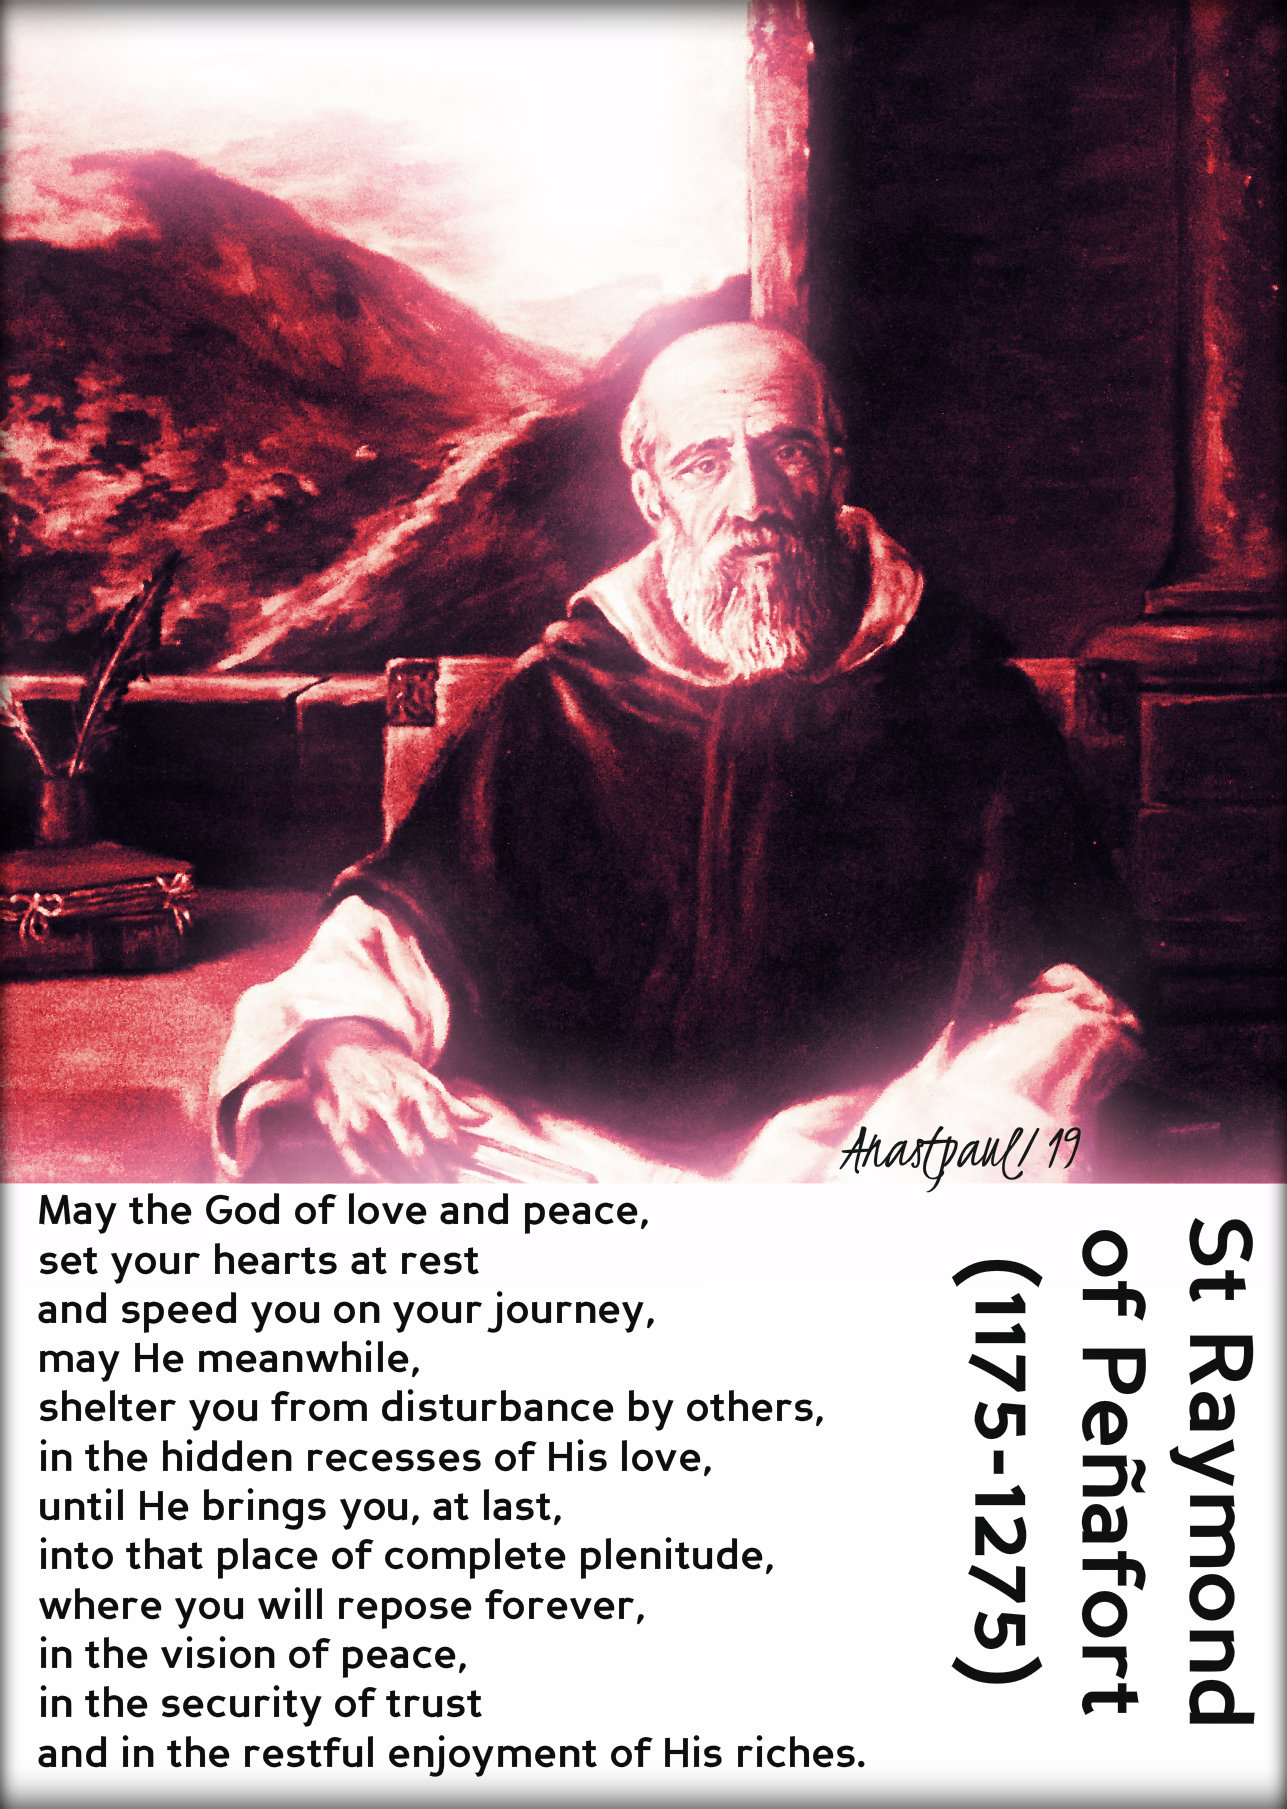 may the god of love and peace - st raymond of penafort - 7 jan 2019.jpg